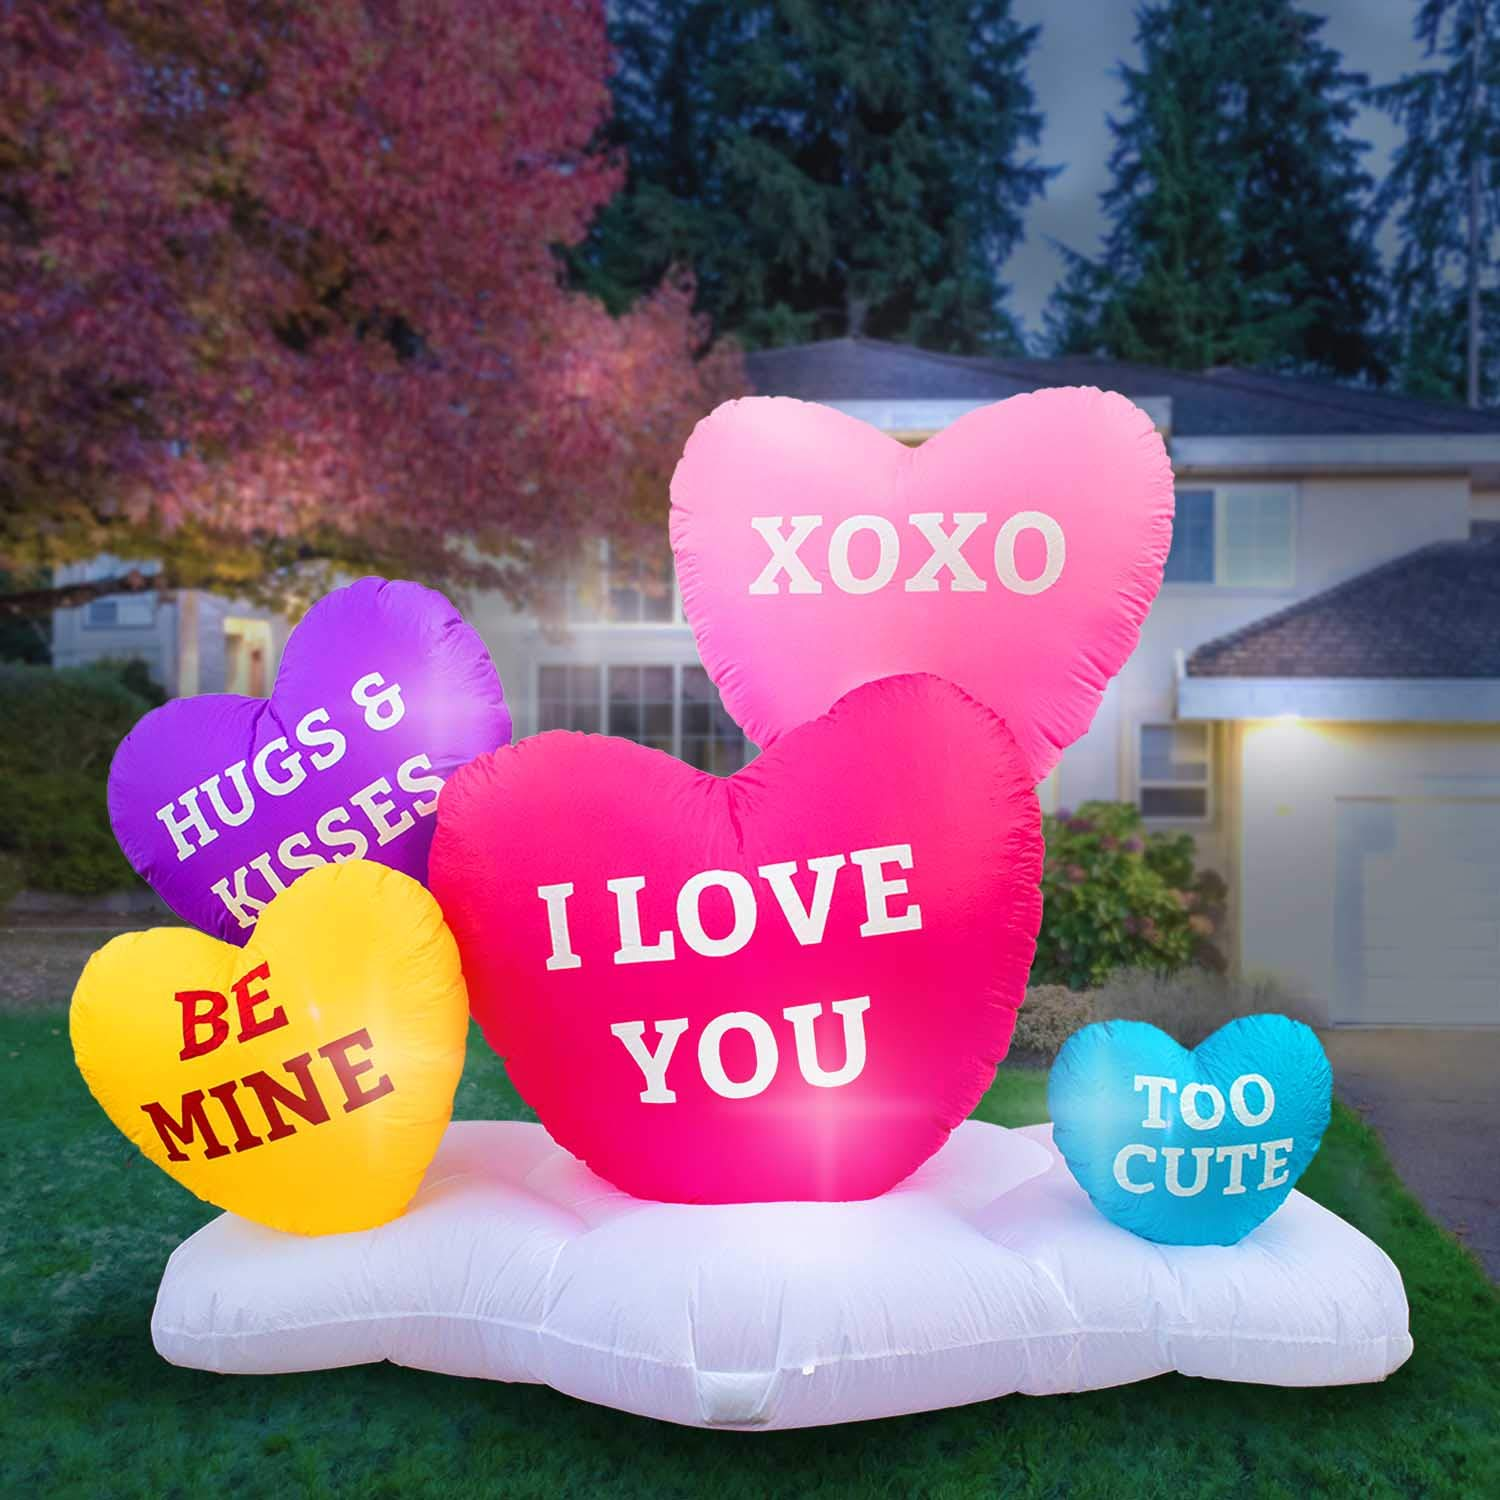 Holidayana 8 Foot Inflatable Hearts Decoration, Outdoor Yard Decor, Includes Built-in Bulbs, Tie-Down Points, and Powerful Built in Fan